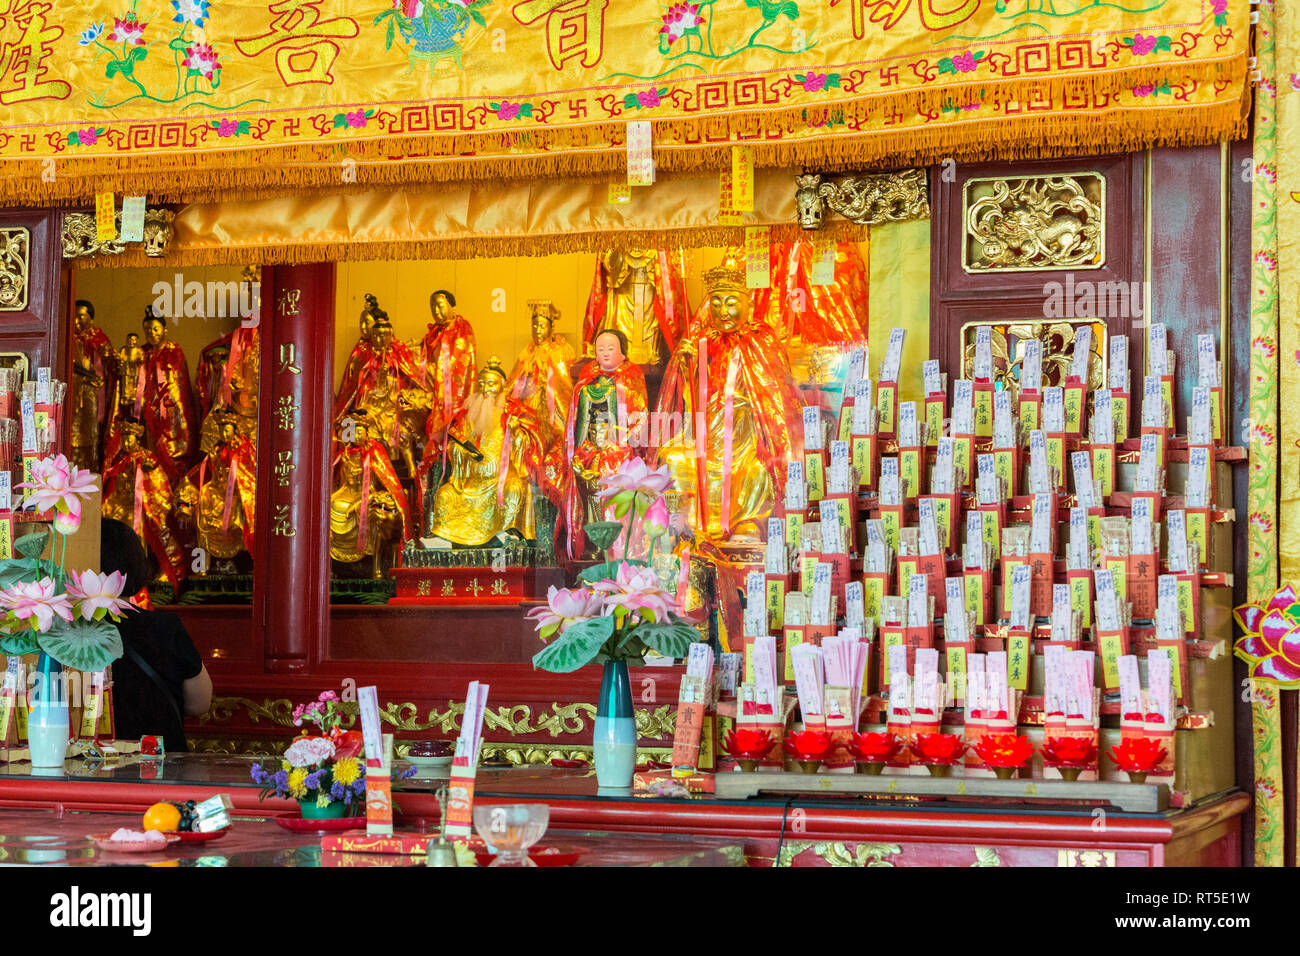 George Town, Penang, Malaysia.  Altar inside Goddess of Mercy Temple, Kuan Yin Teng, Kong Hock Keong.  Wishes and Prayers for Good Fortune on Right. - Stock Image